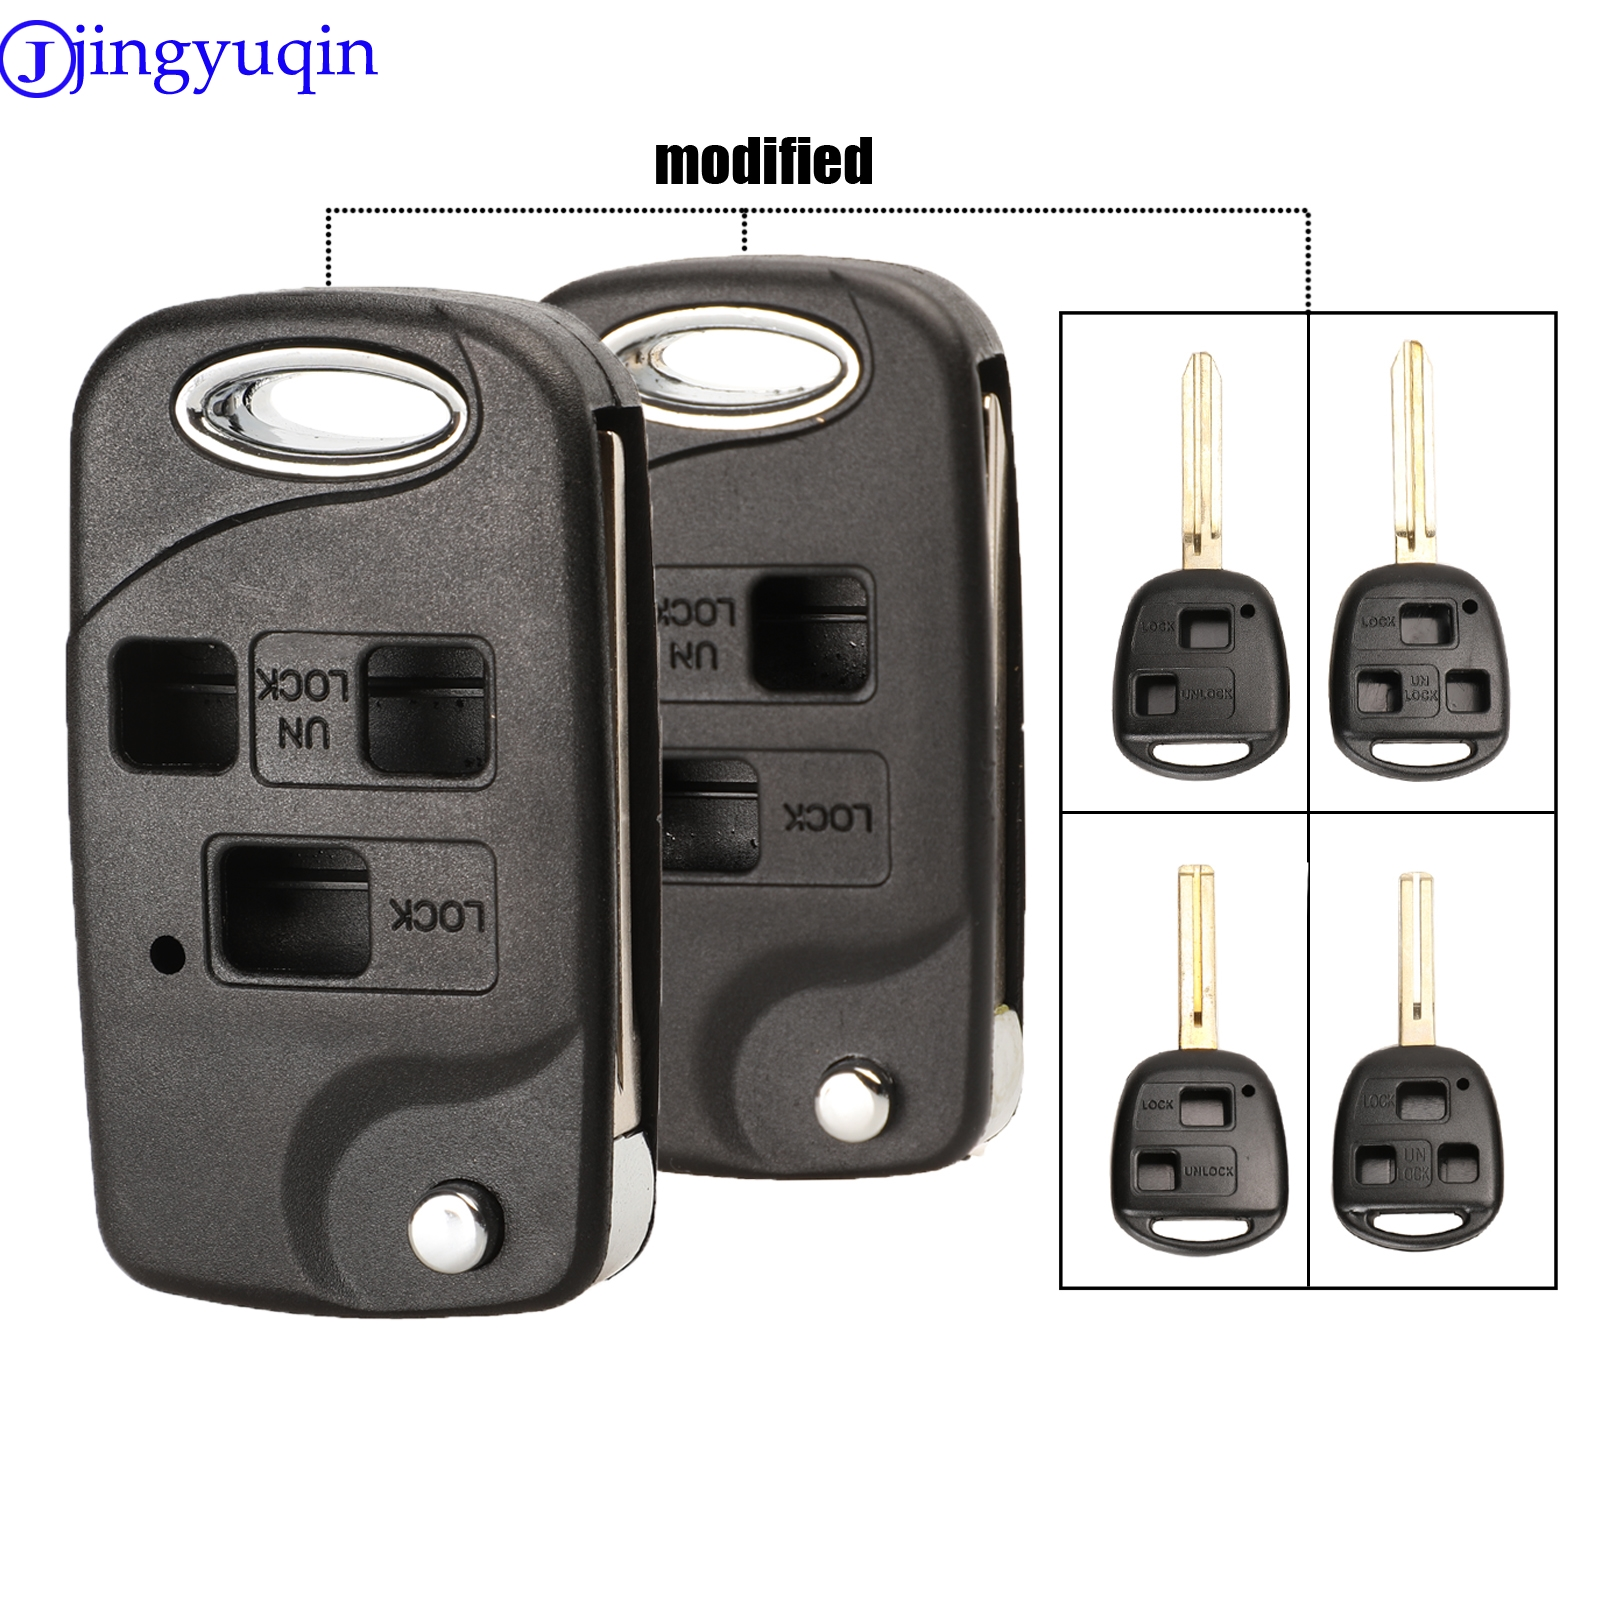 Jingyuqin 2/3 Buttons Remote Folding Flip Car Key Shell Case For Toyota Yaris Carina Corolla Avensis Cover Toy43 Toy48 Blade Fob